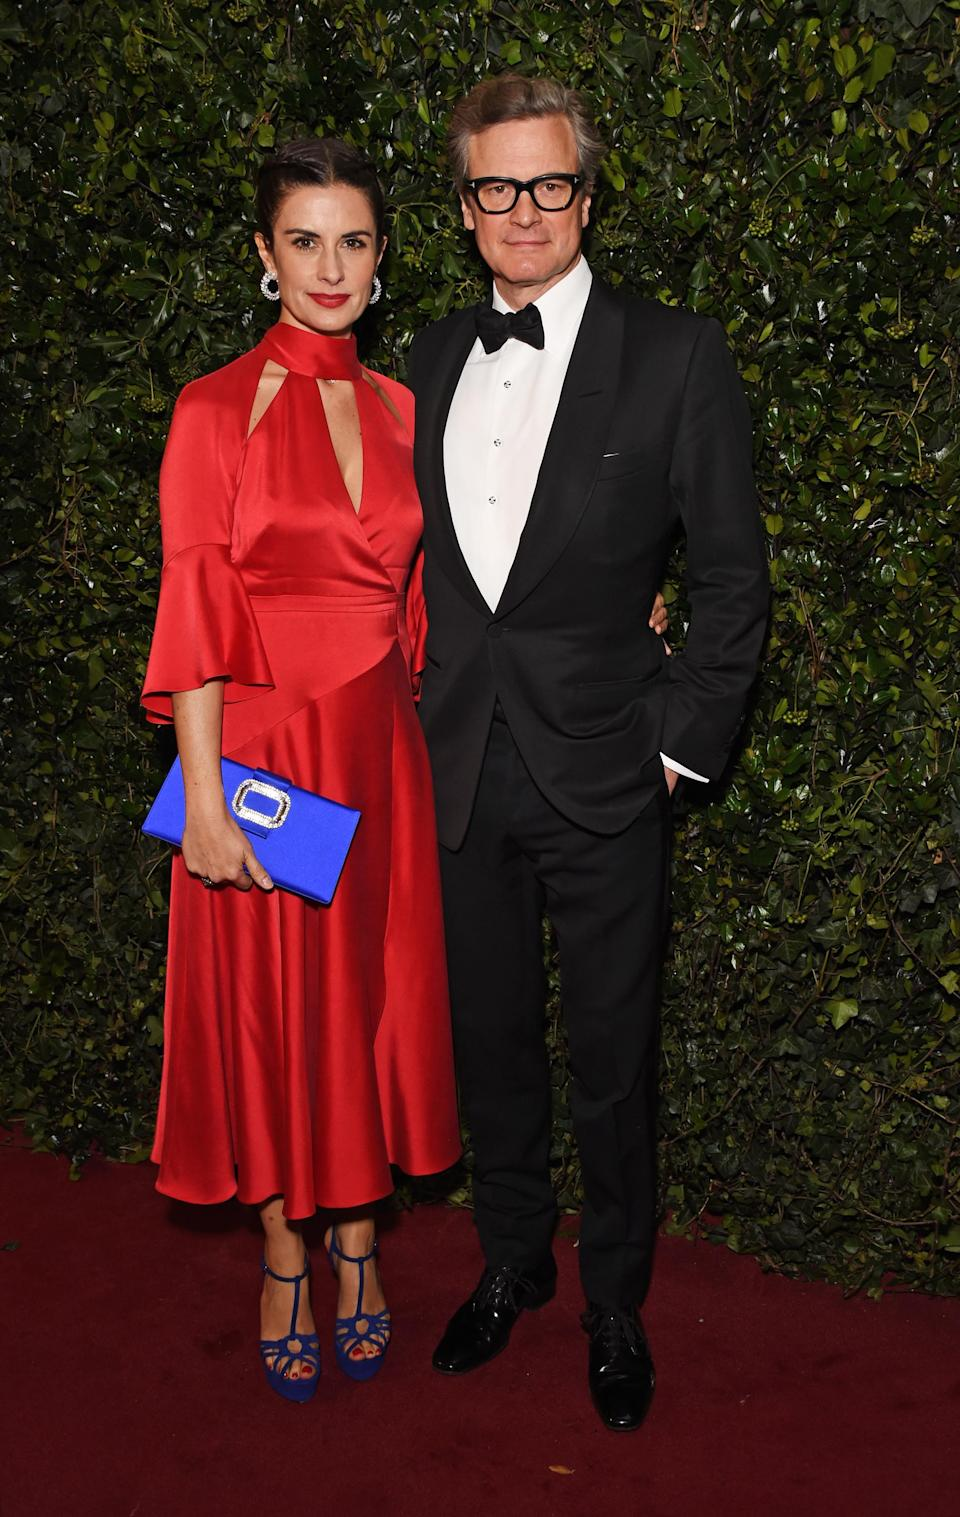 <p>Livia donned an eco-friendly red dress by Temperley while Colin went for his usual bow tie and suit. <i>[Photo: Getty]</i> </p>